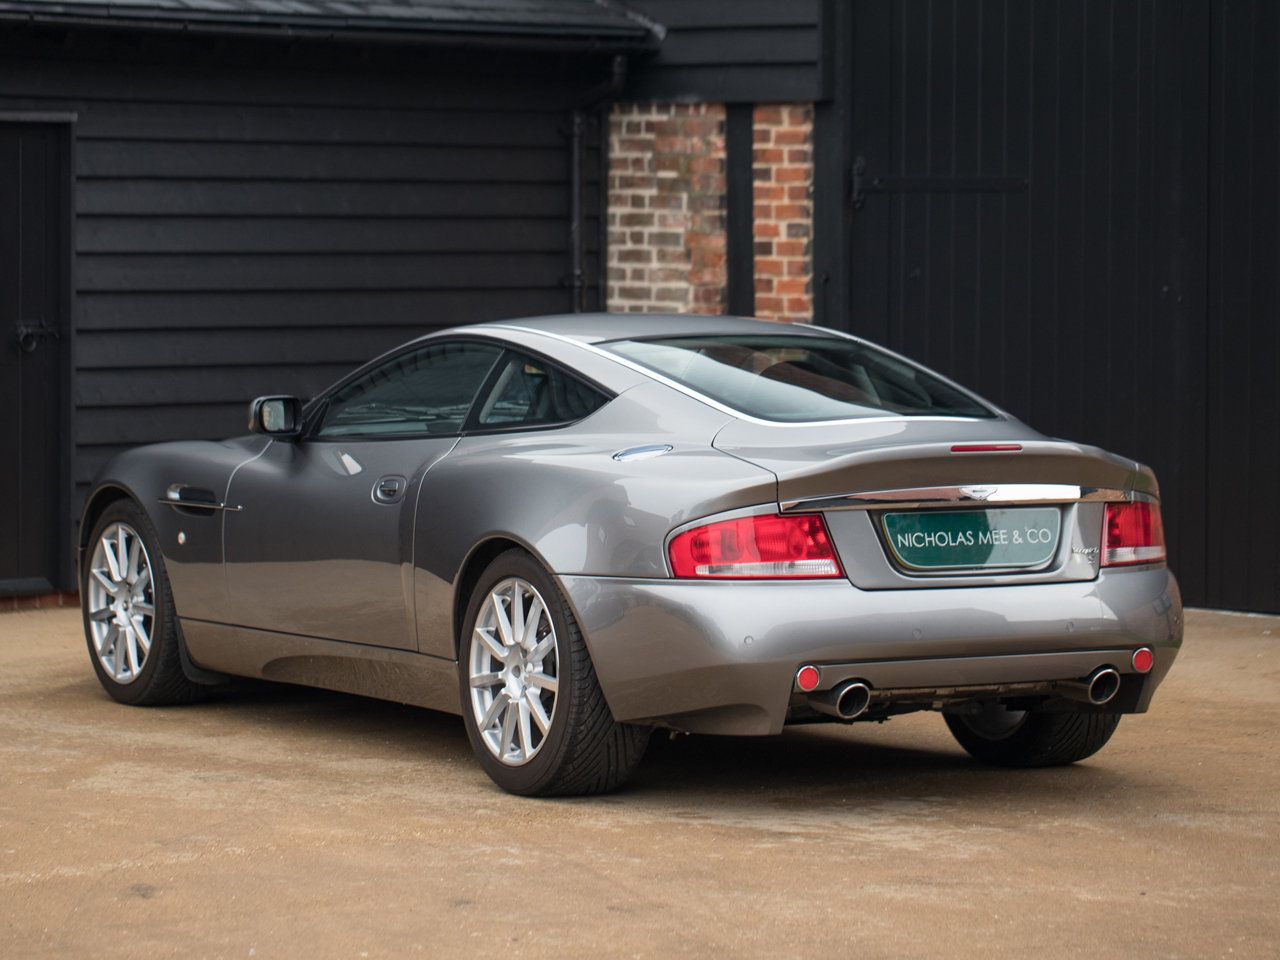 2005 Aston Martin Vanquish S For Sale (picture 3 of 6)